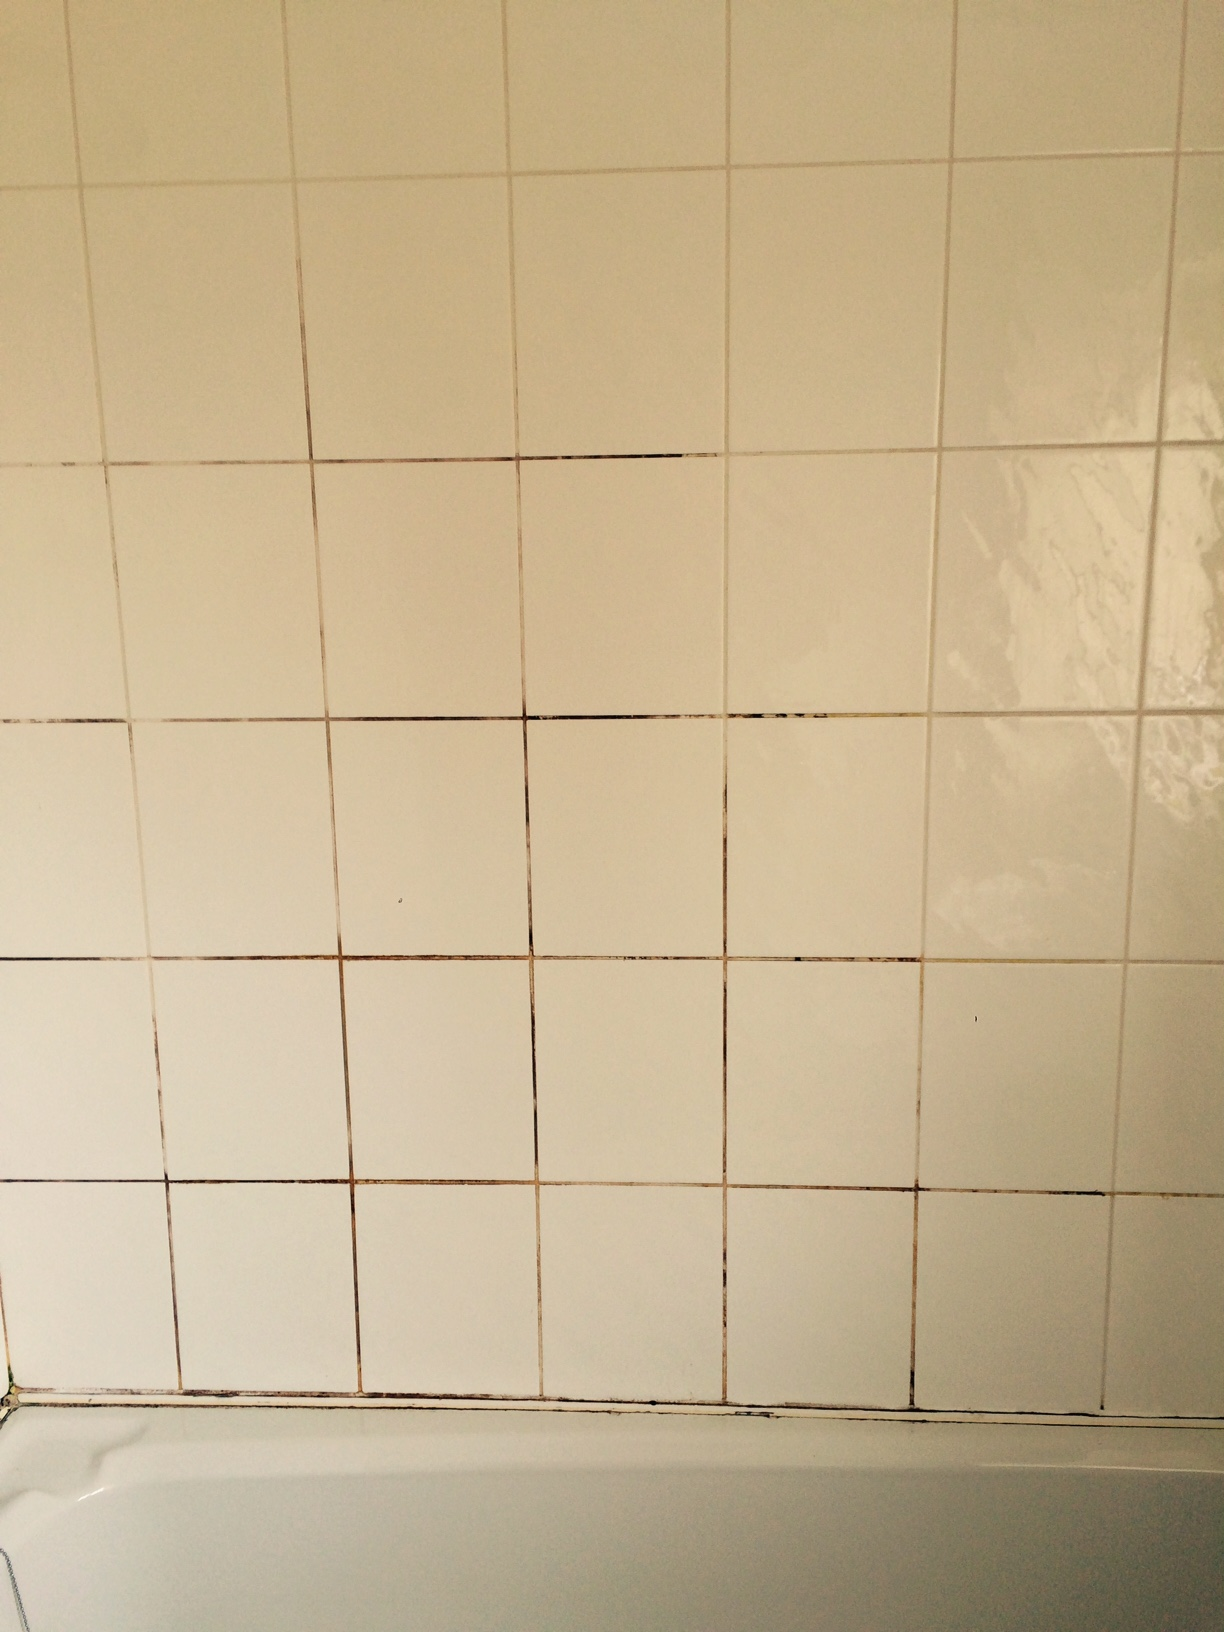 How To Get Grout Off Natural Stone Tiles